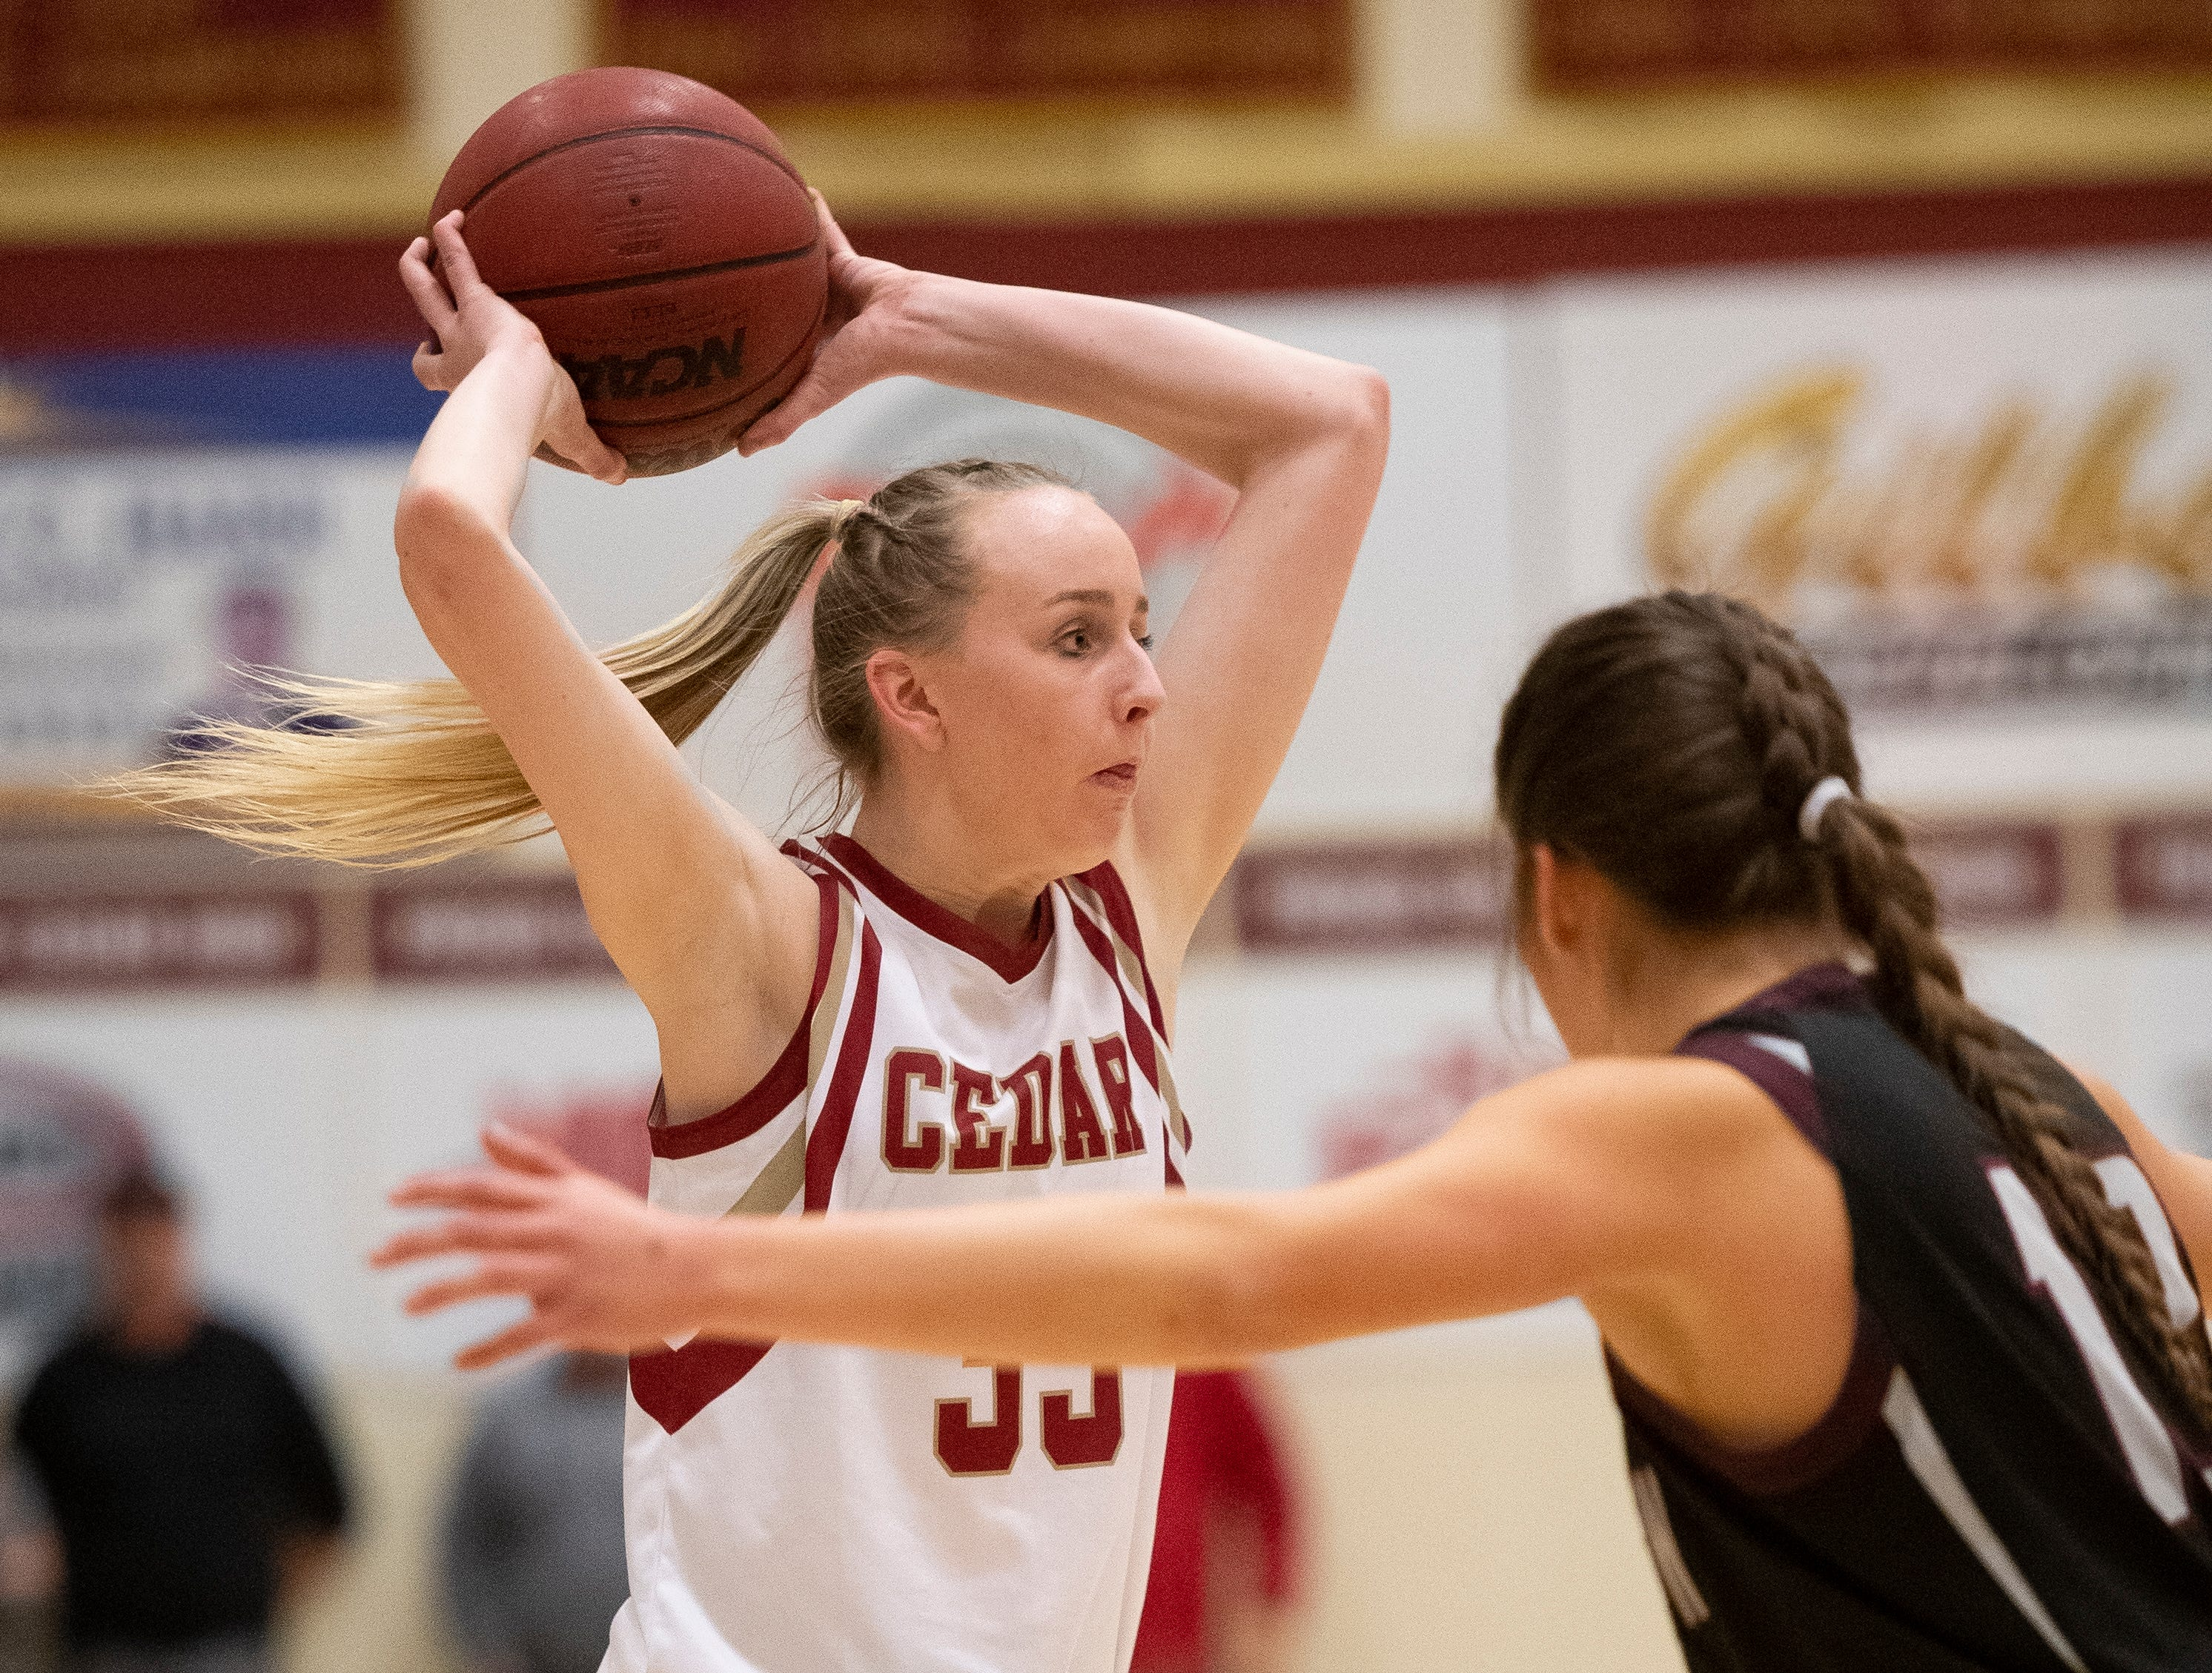 Cedar High School sophomore Samantha Johnston (33) throws a pass against Pine View at CHS Tuesday, January 8, 2019. Cedar remains undefeated with a 63-40 win over the Panthers.